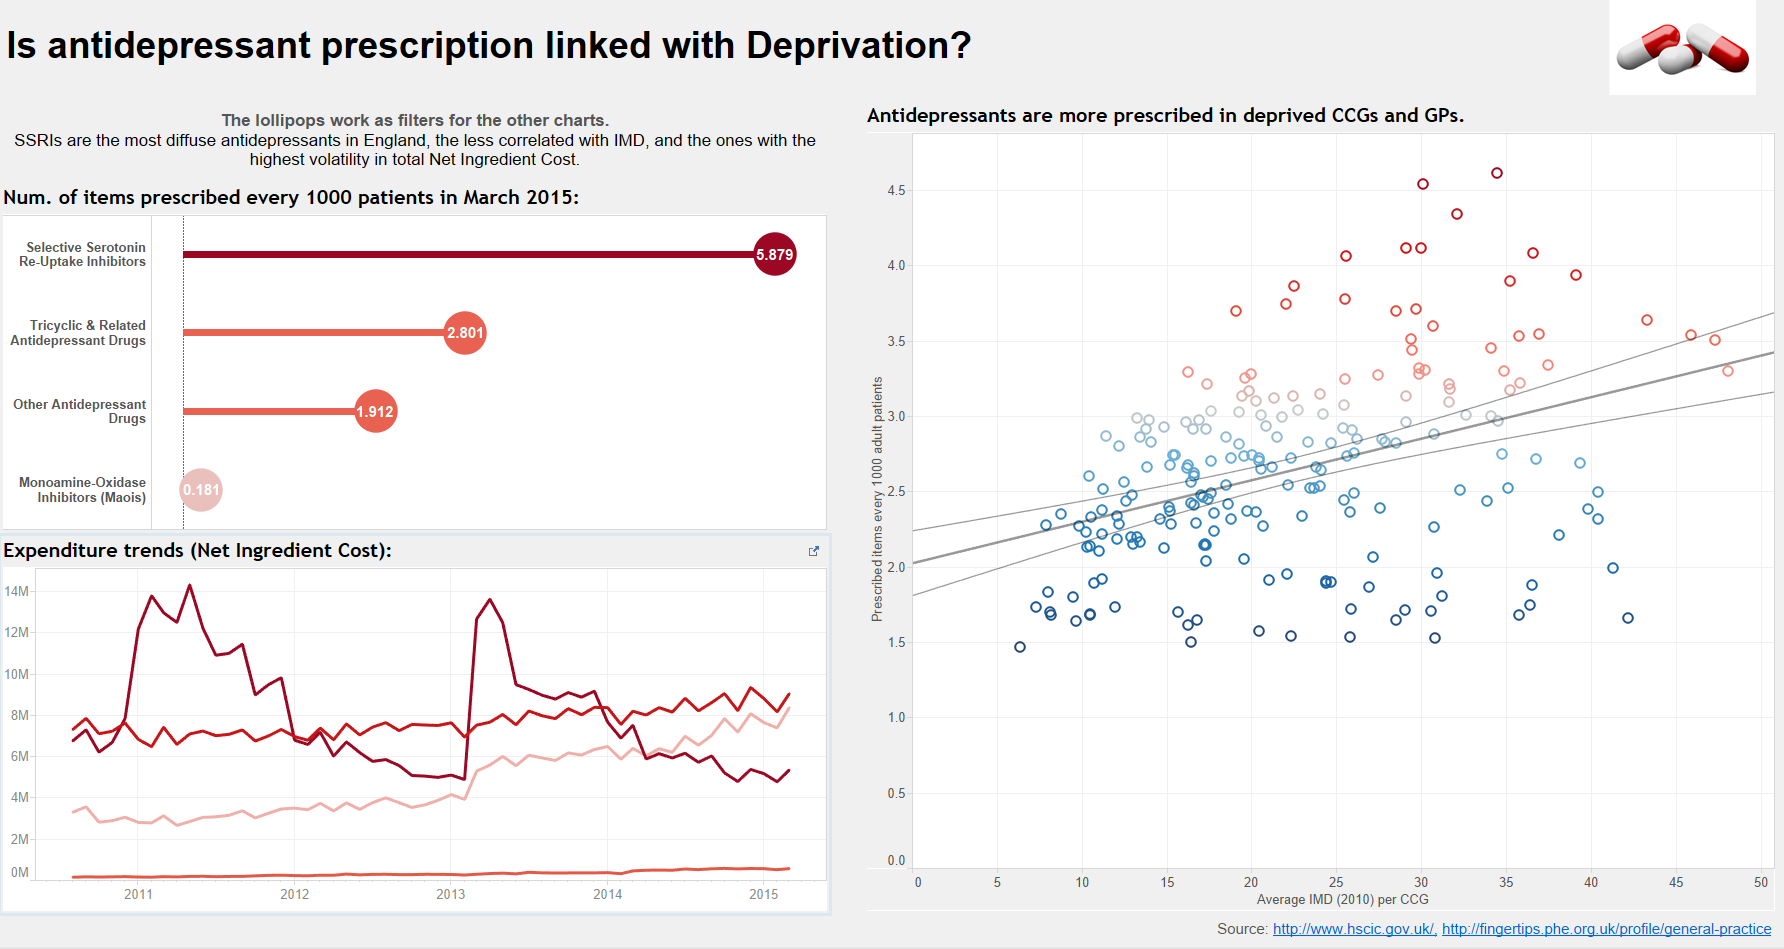 Dashboard #2: Is prescription of Antidepressants linked with Deprivation?